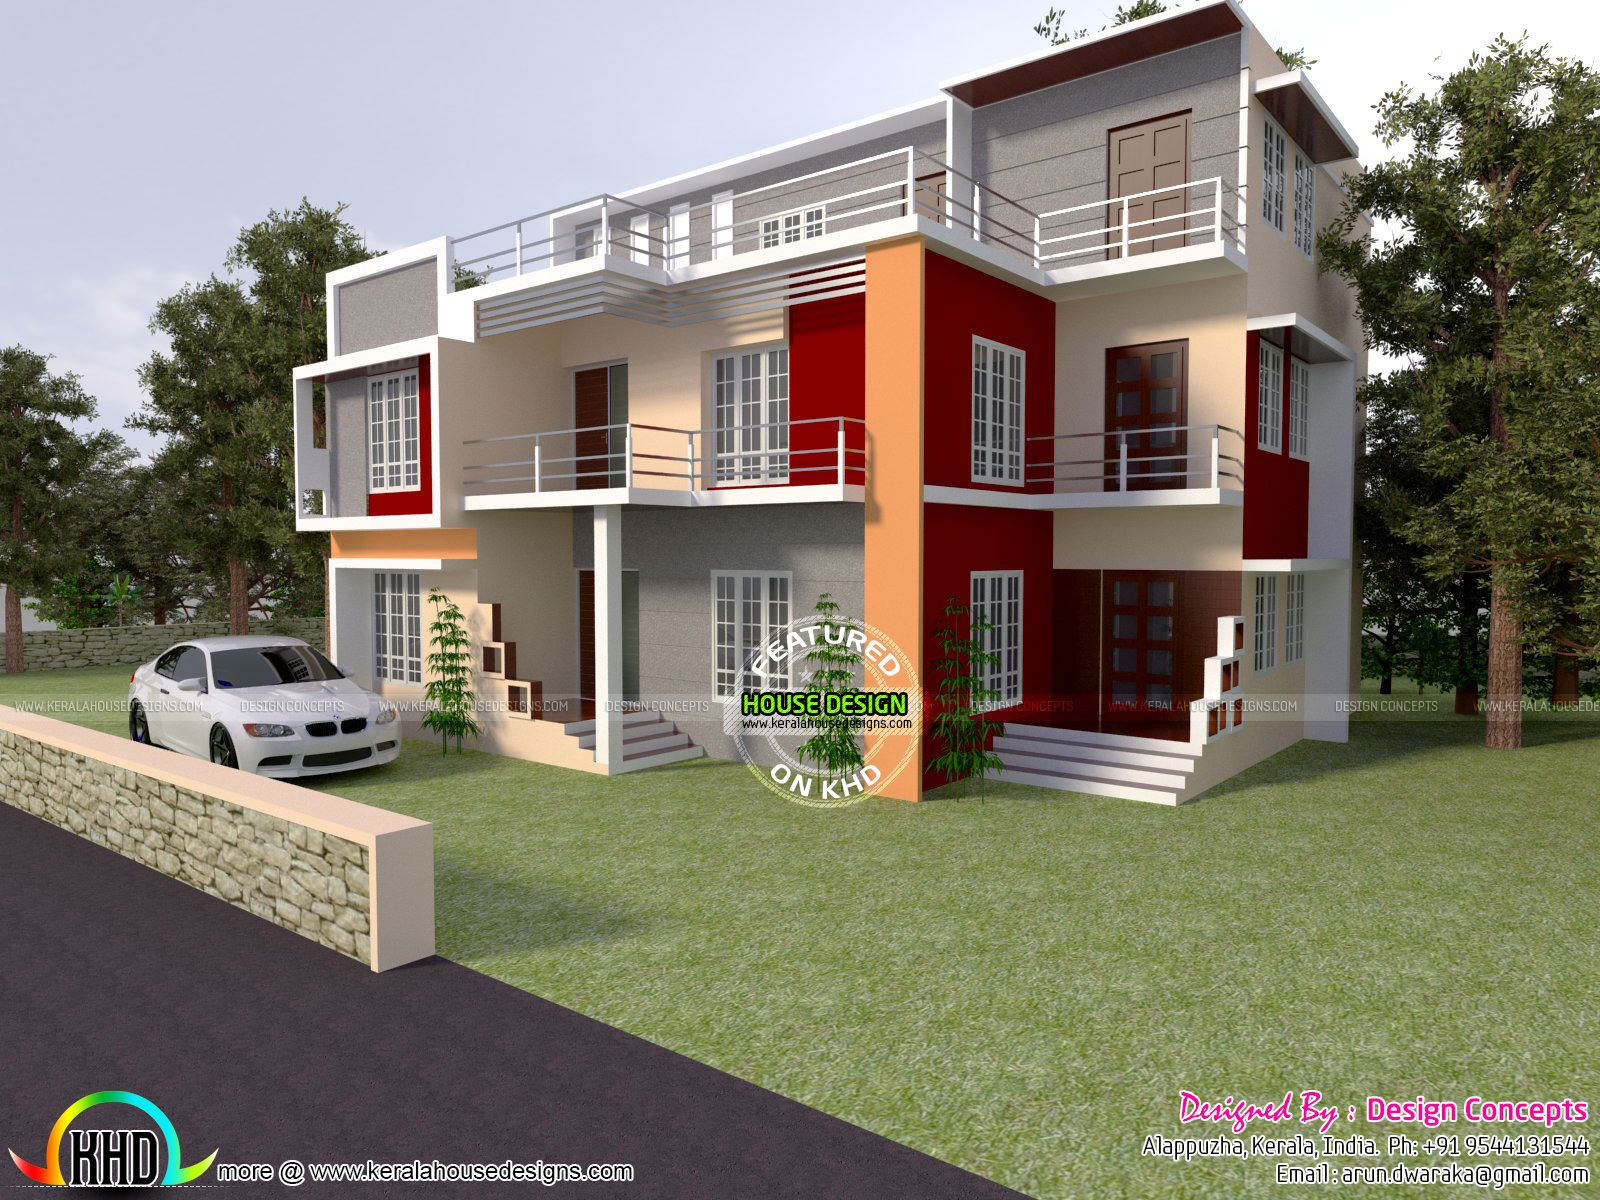 Bhk Modern House Architecture Proposed In Afghanistan Design Provided By Er Arun Kumar Alappuzha Kerala Kerala House Design Modern House Design Modern House